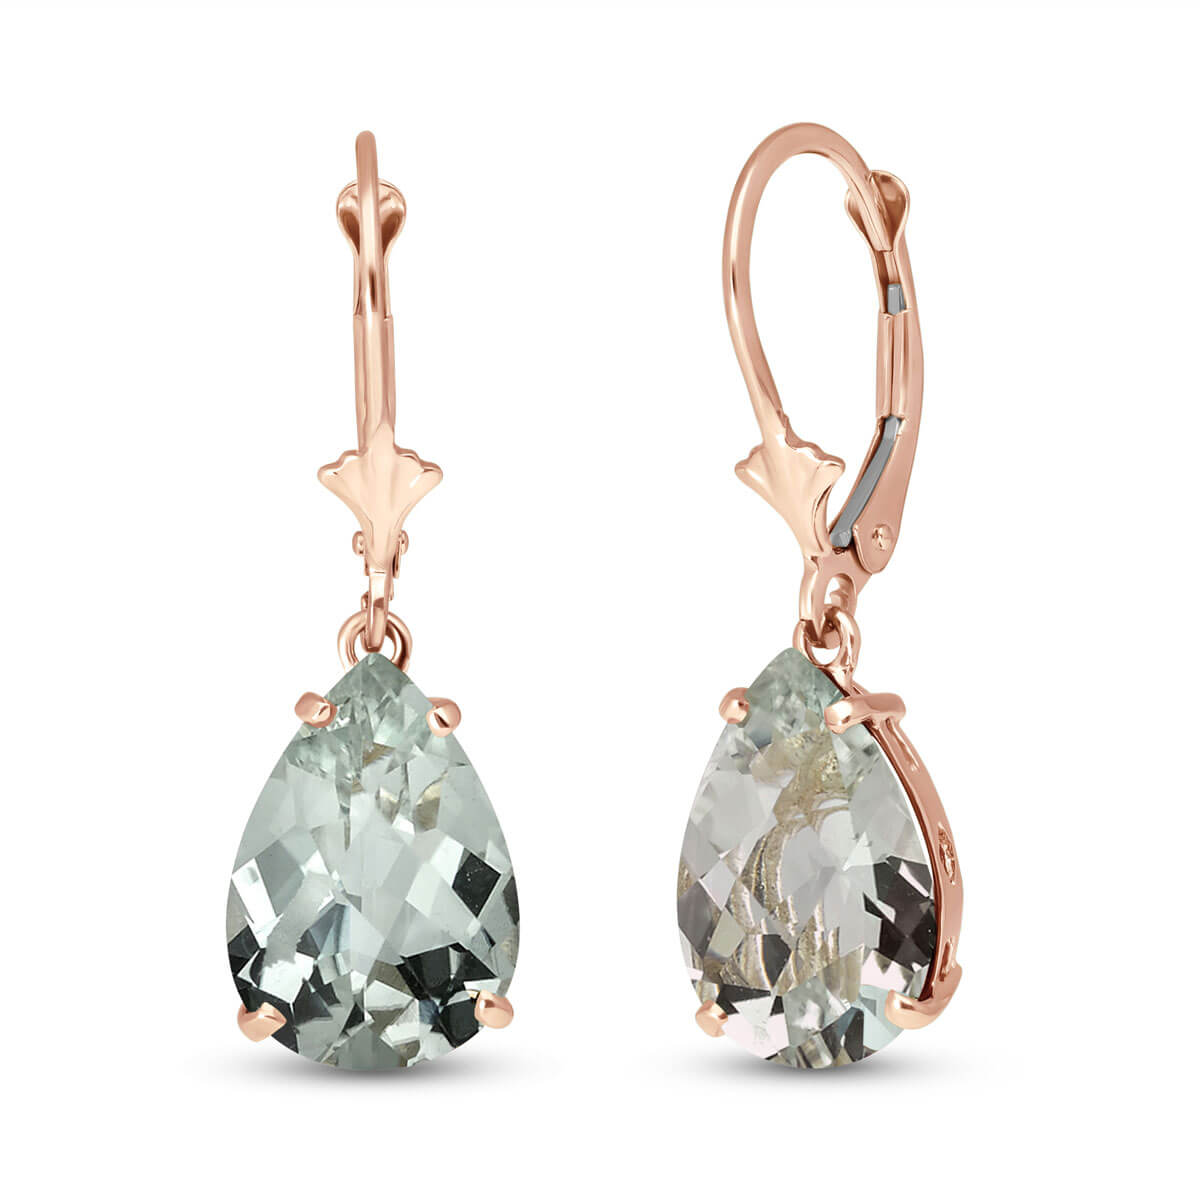 Green Amethyst Drop Earrings 10 ctw in 9ct Rose Gold